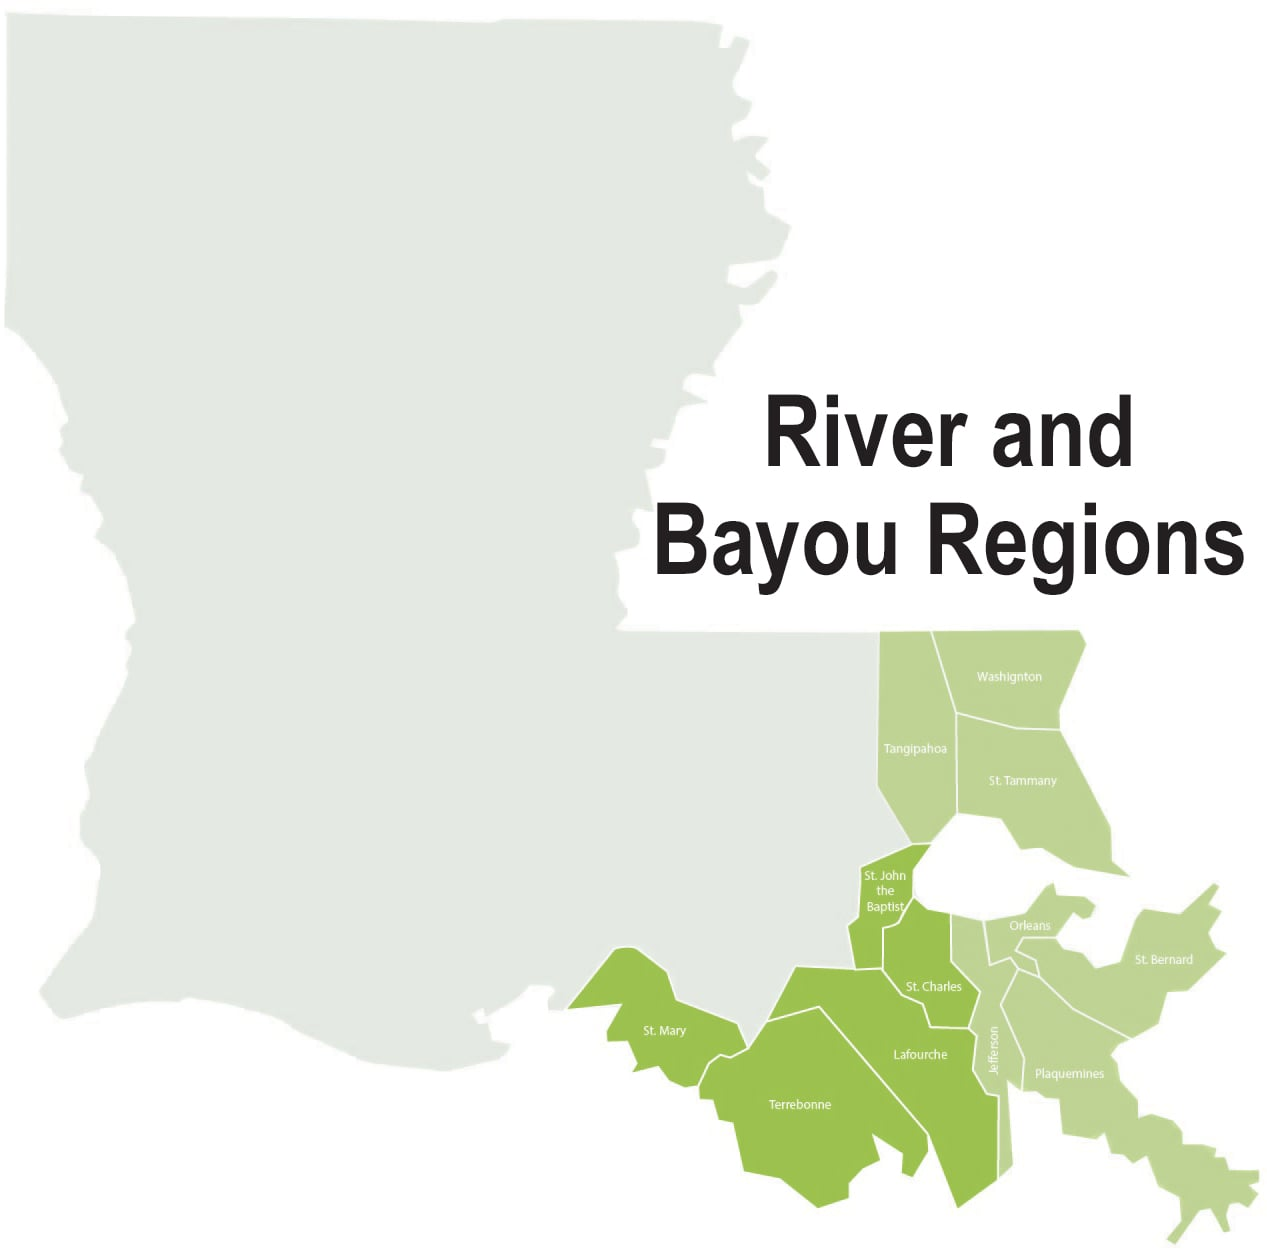 River and Bayou Regions